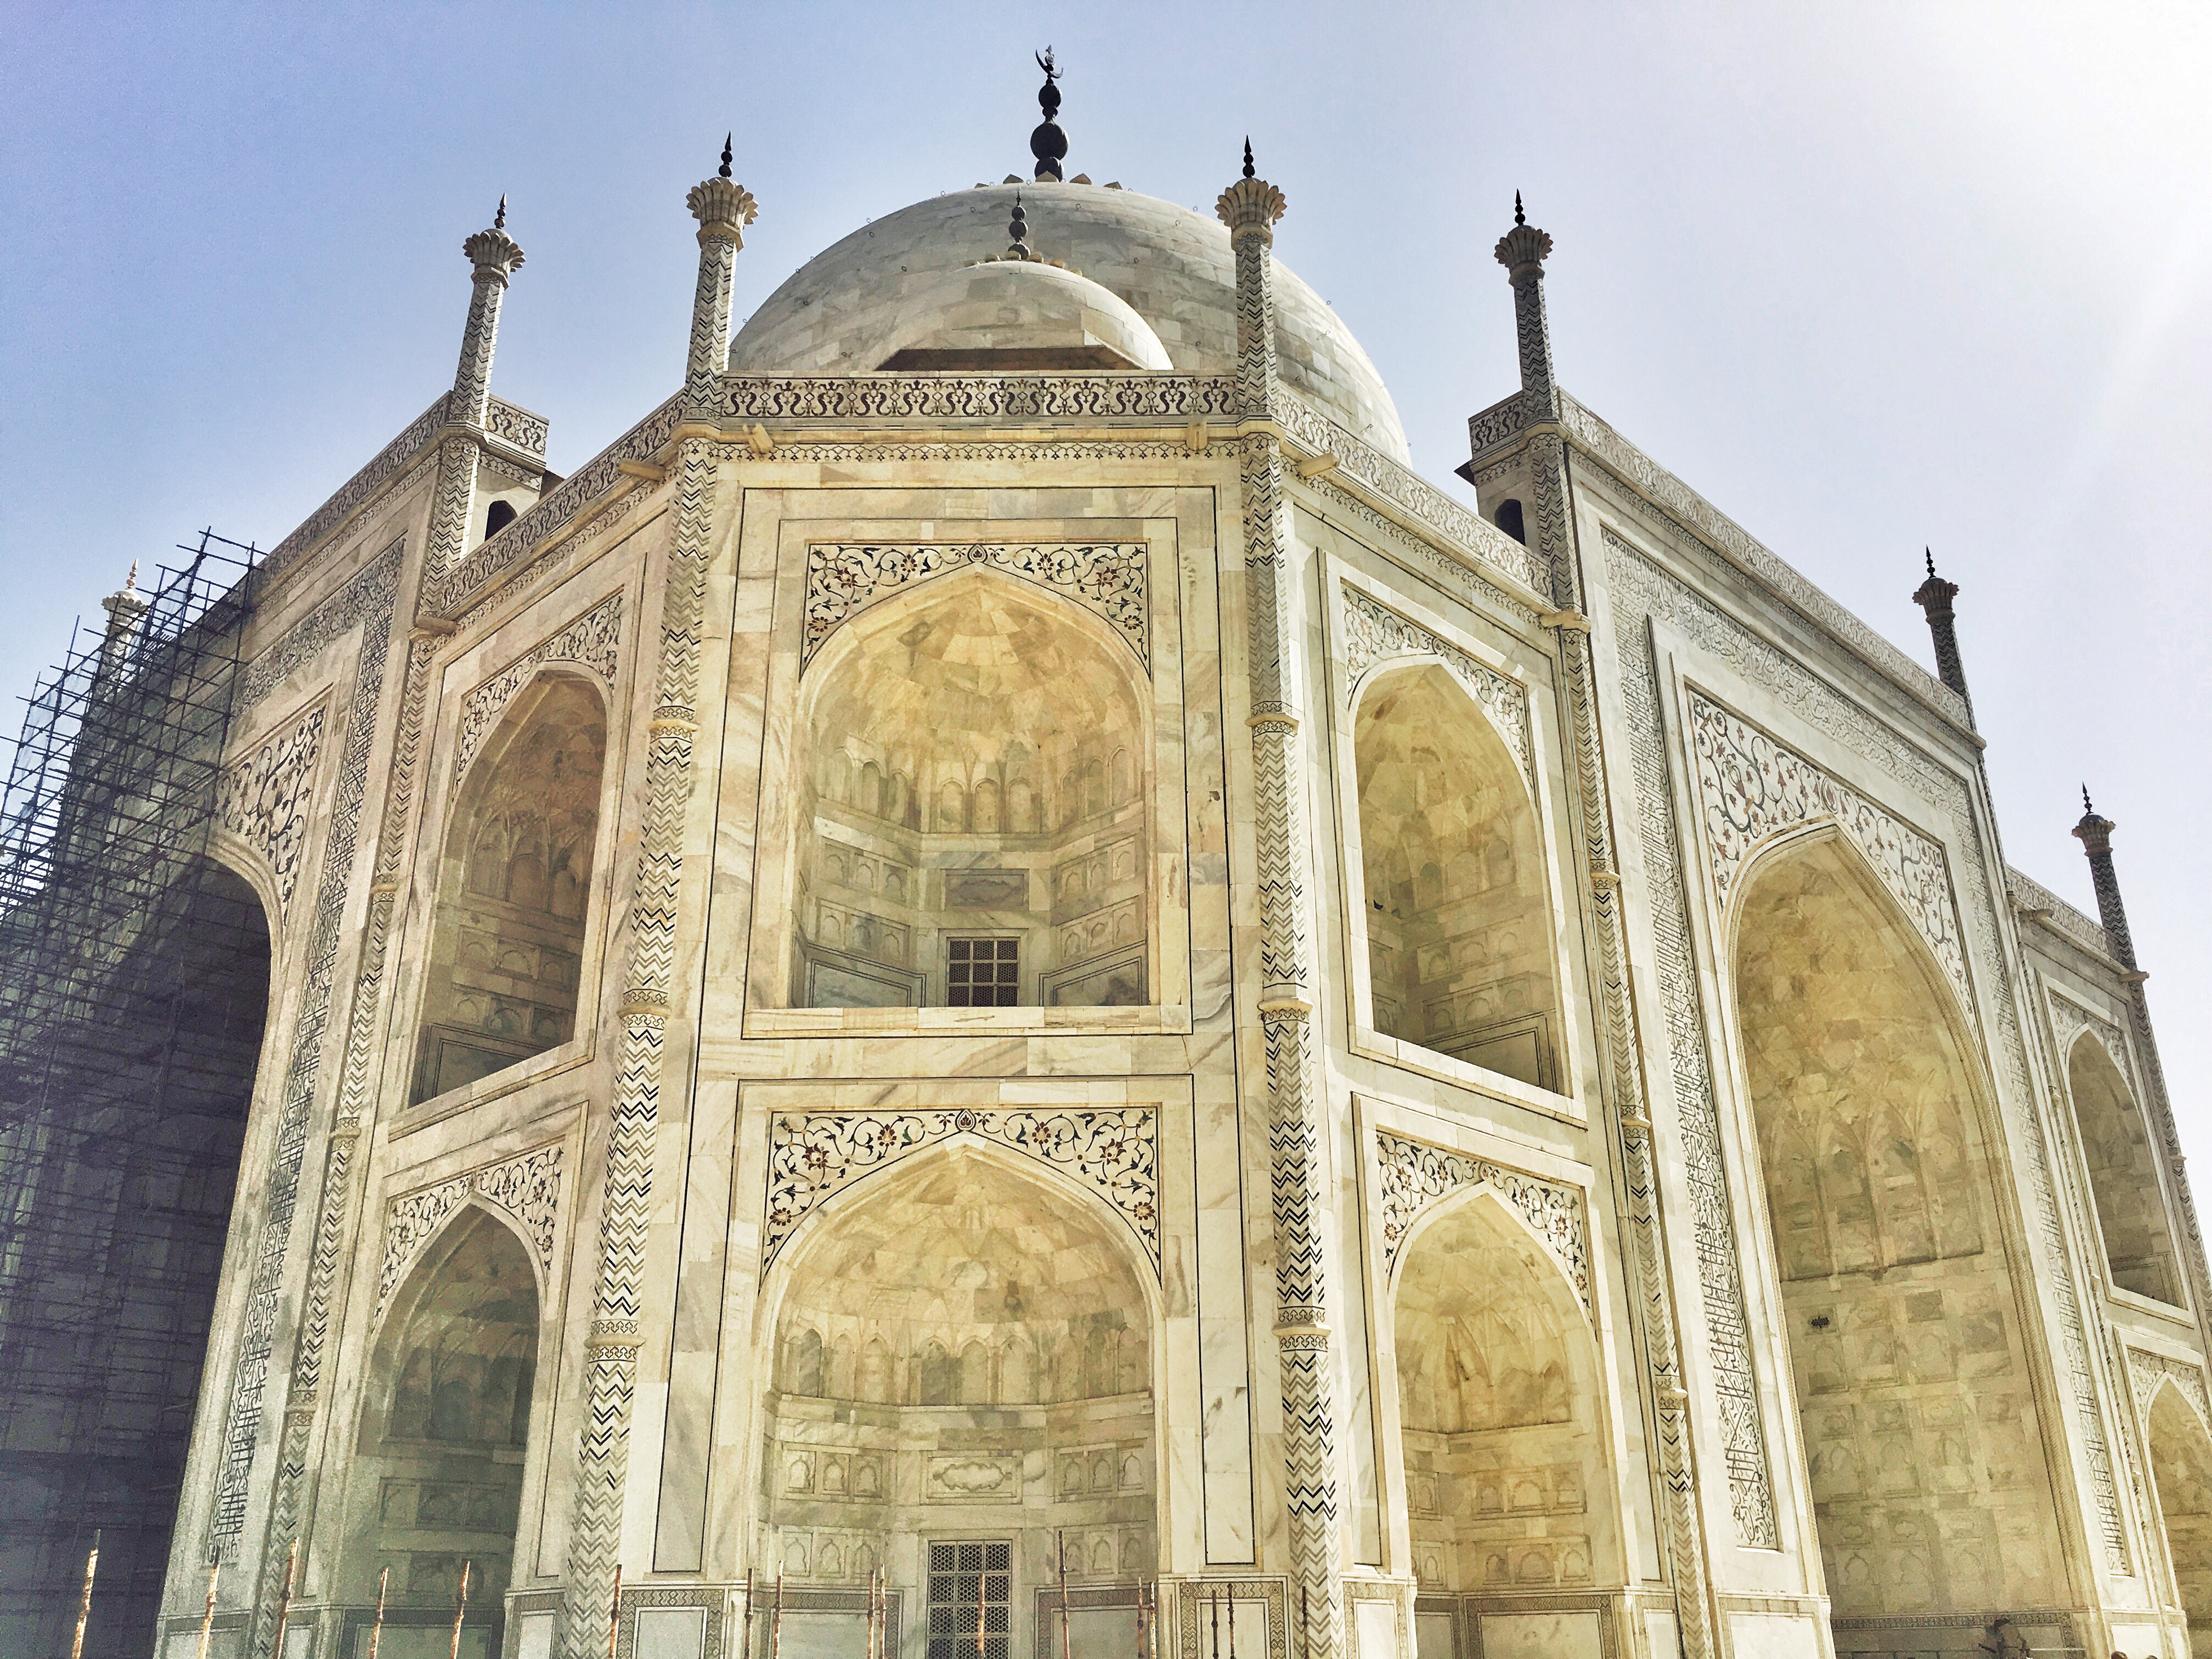 Taj Mahal - The Mausoleum for the iconic love story - The Wandering Core